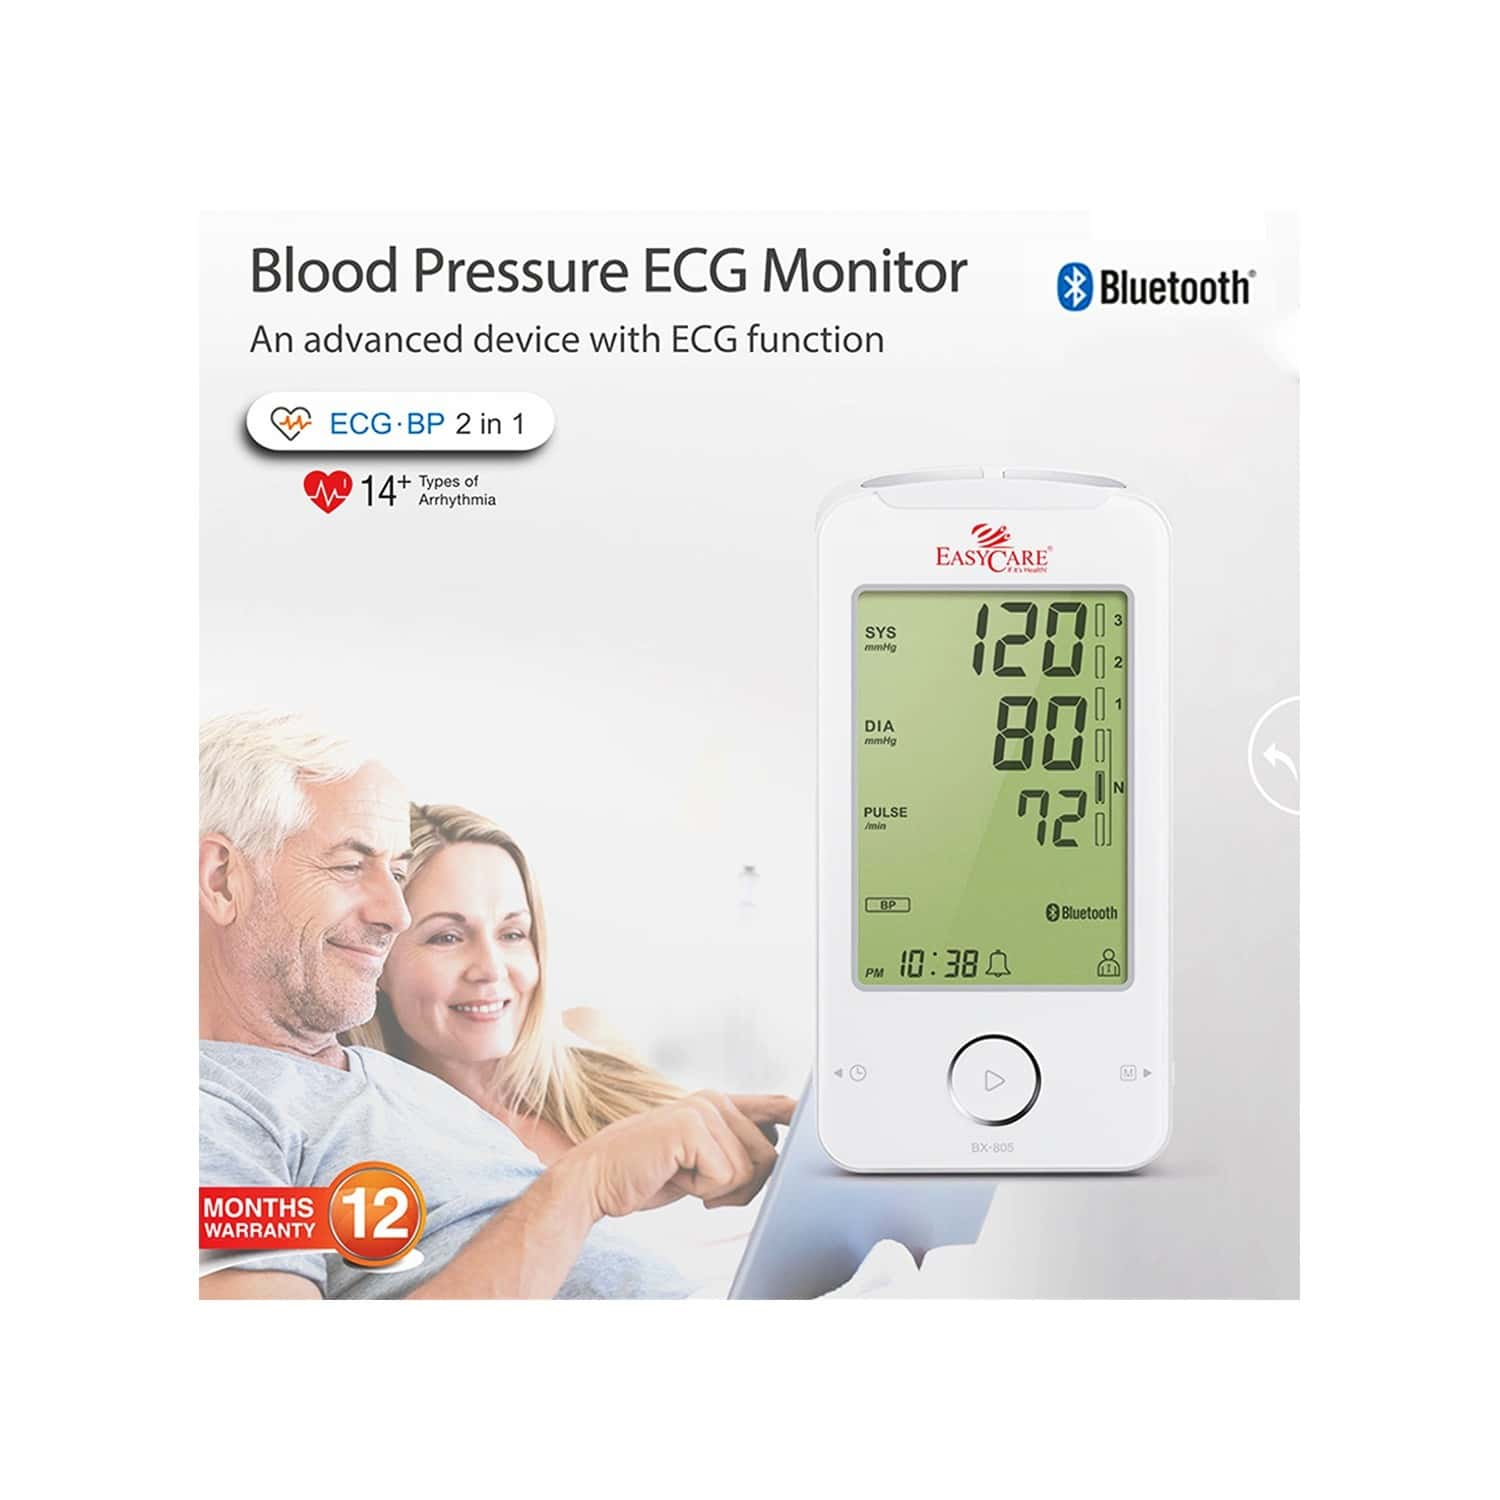 Easycare Advanced (2 In 1 - 1st Time In India) Blood Pressure With Ecg Function Monitor (14+ Types Of Arrhythmia) Who Classification Indicator